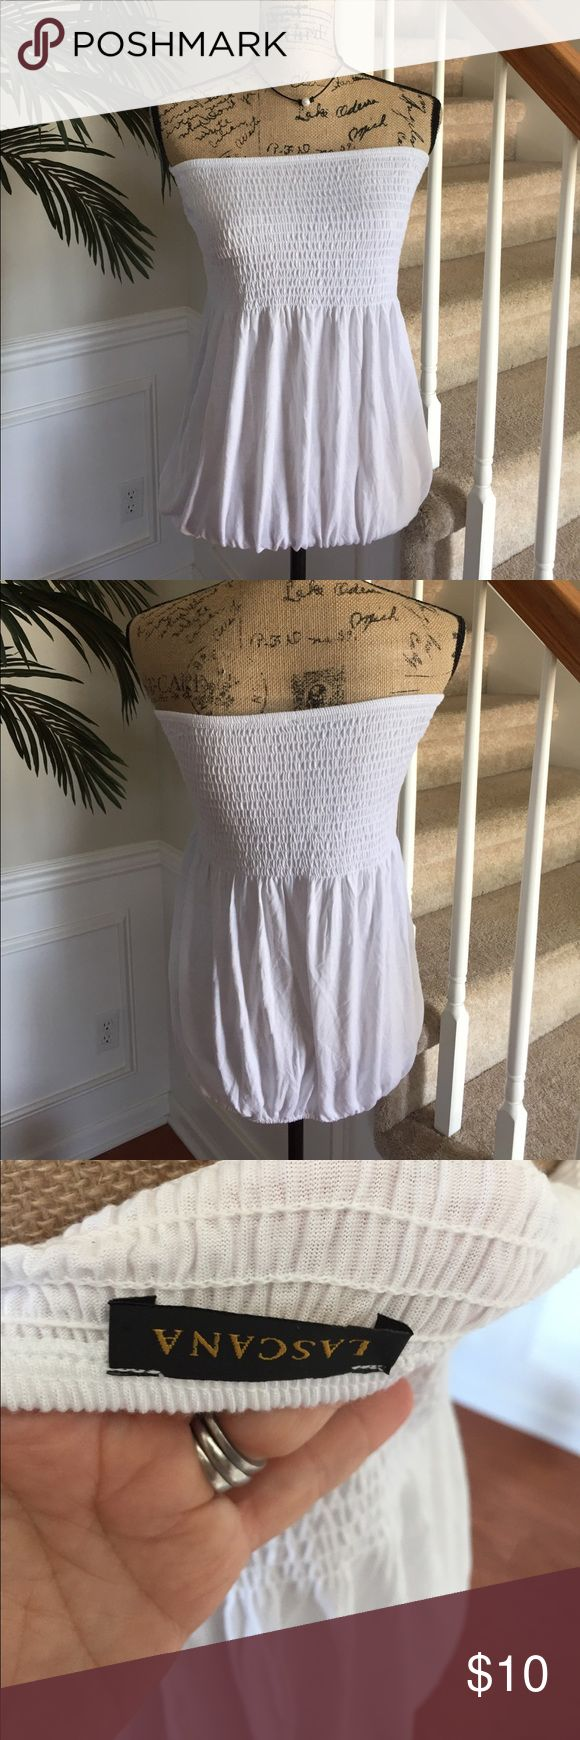 White tube top with elastic waist at bottom EUC L. White tube top with elastic waist at bottom. Size Large NEVER WORN. lascana Tops Blouses